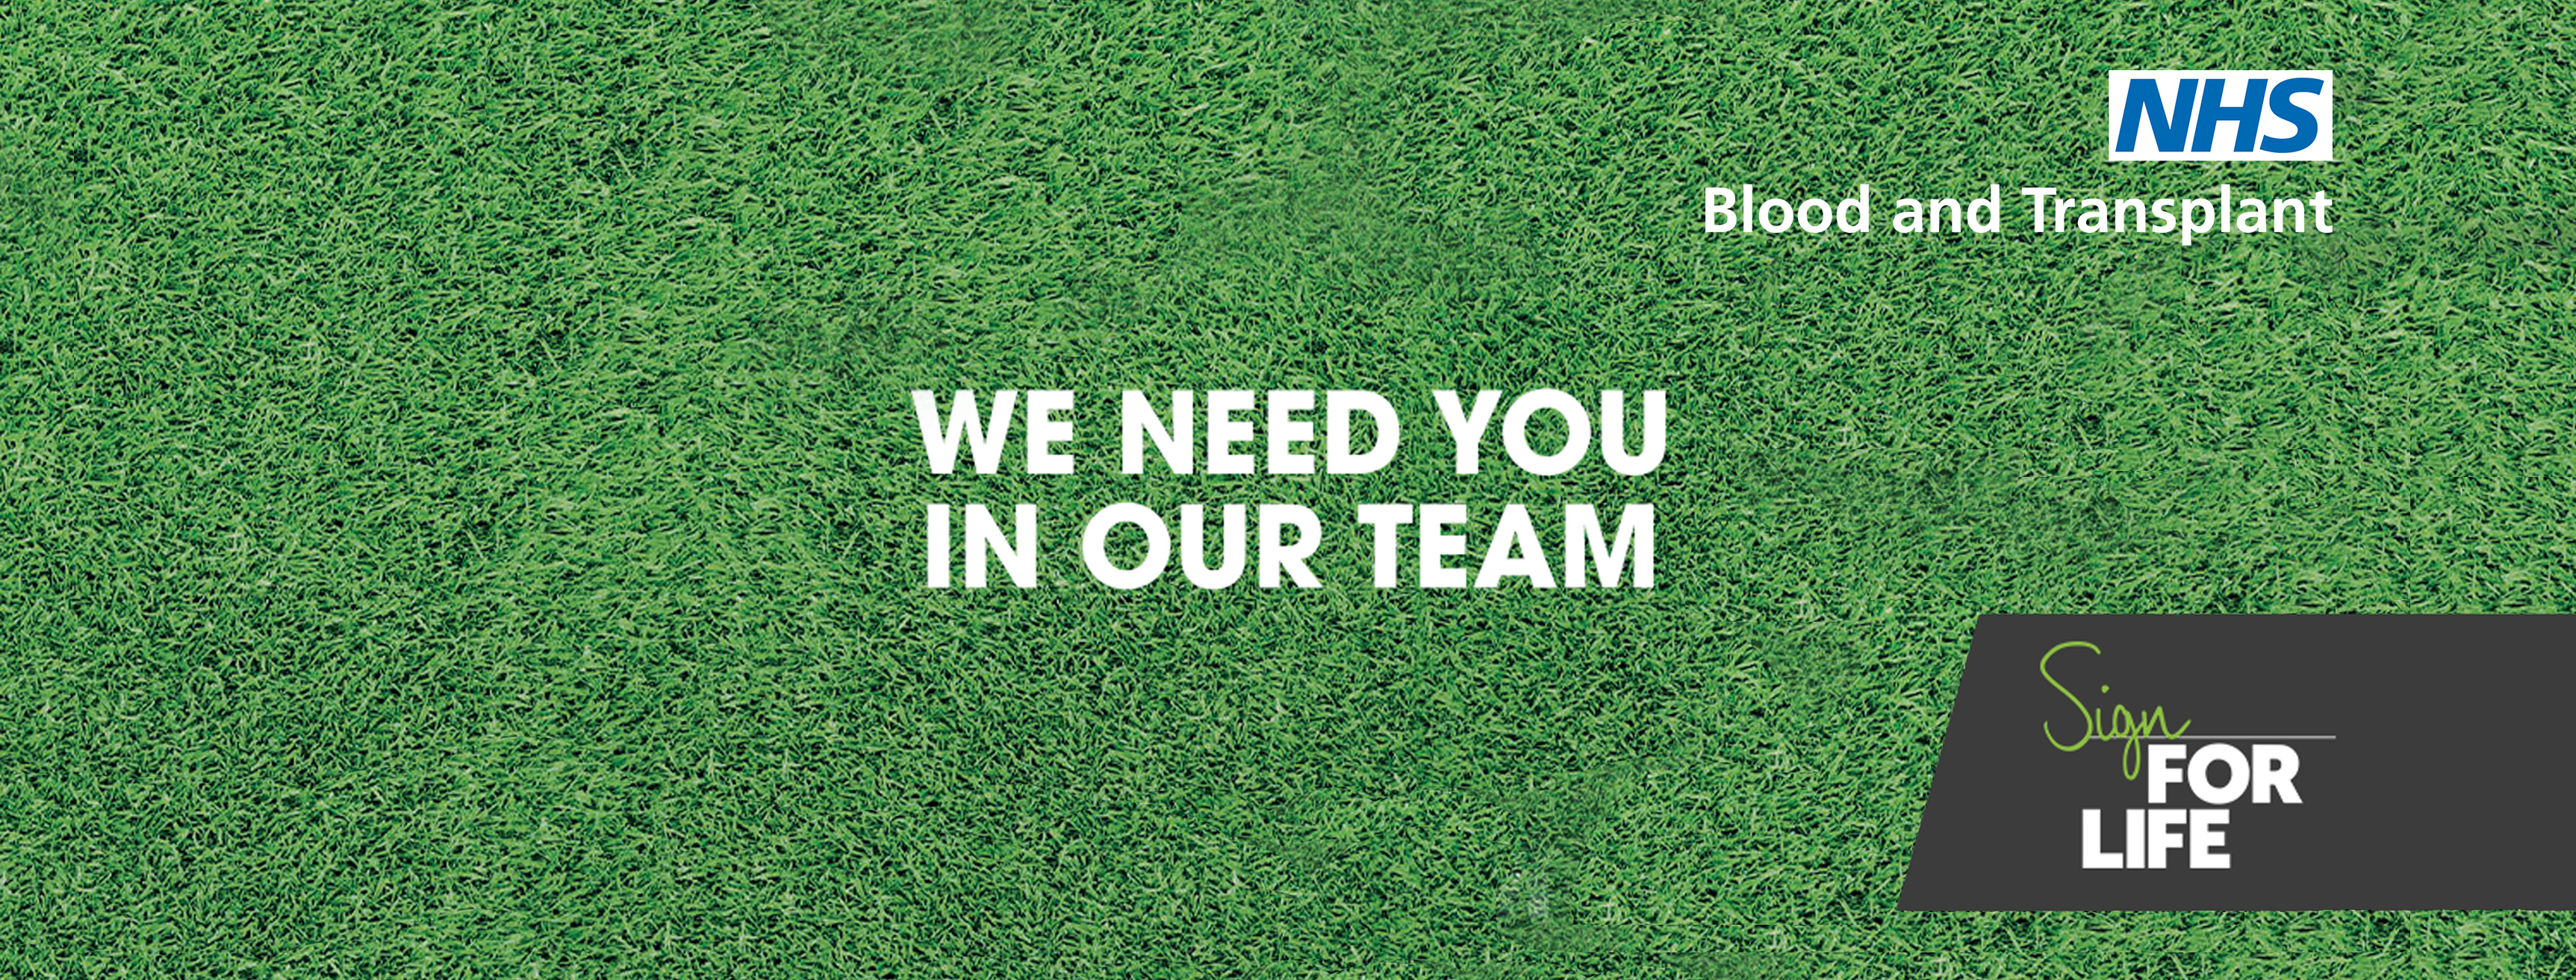 We need you in our team Facebook cover